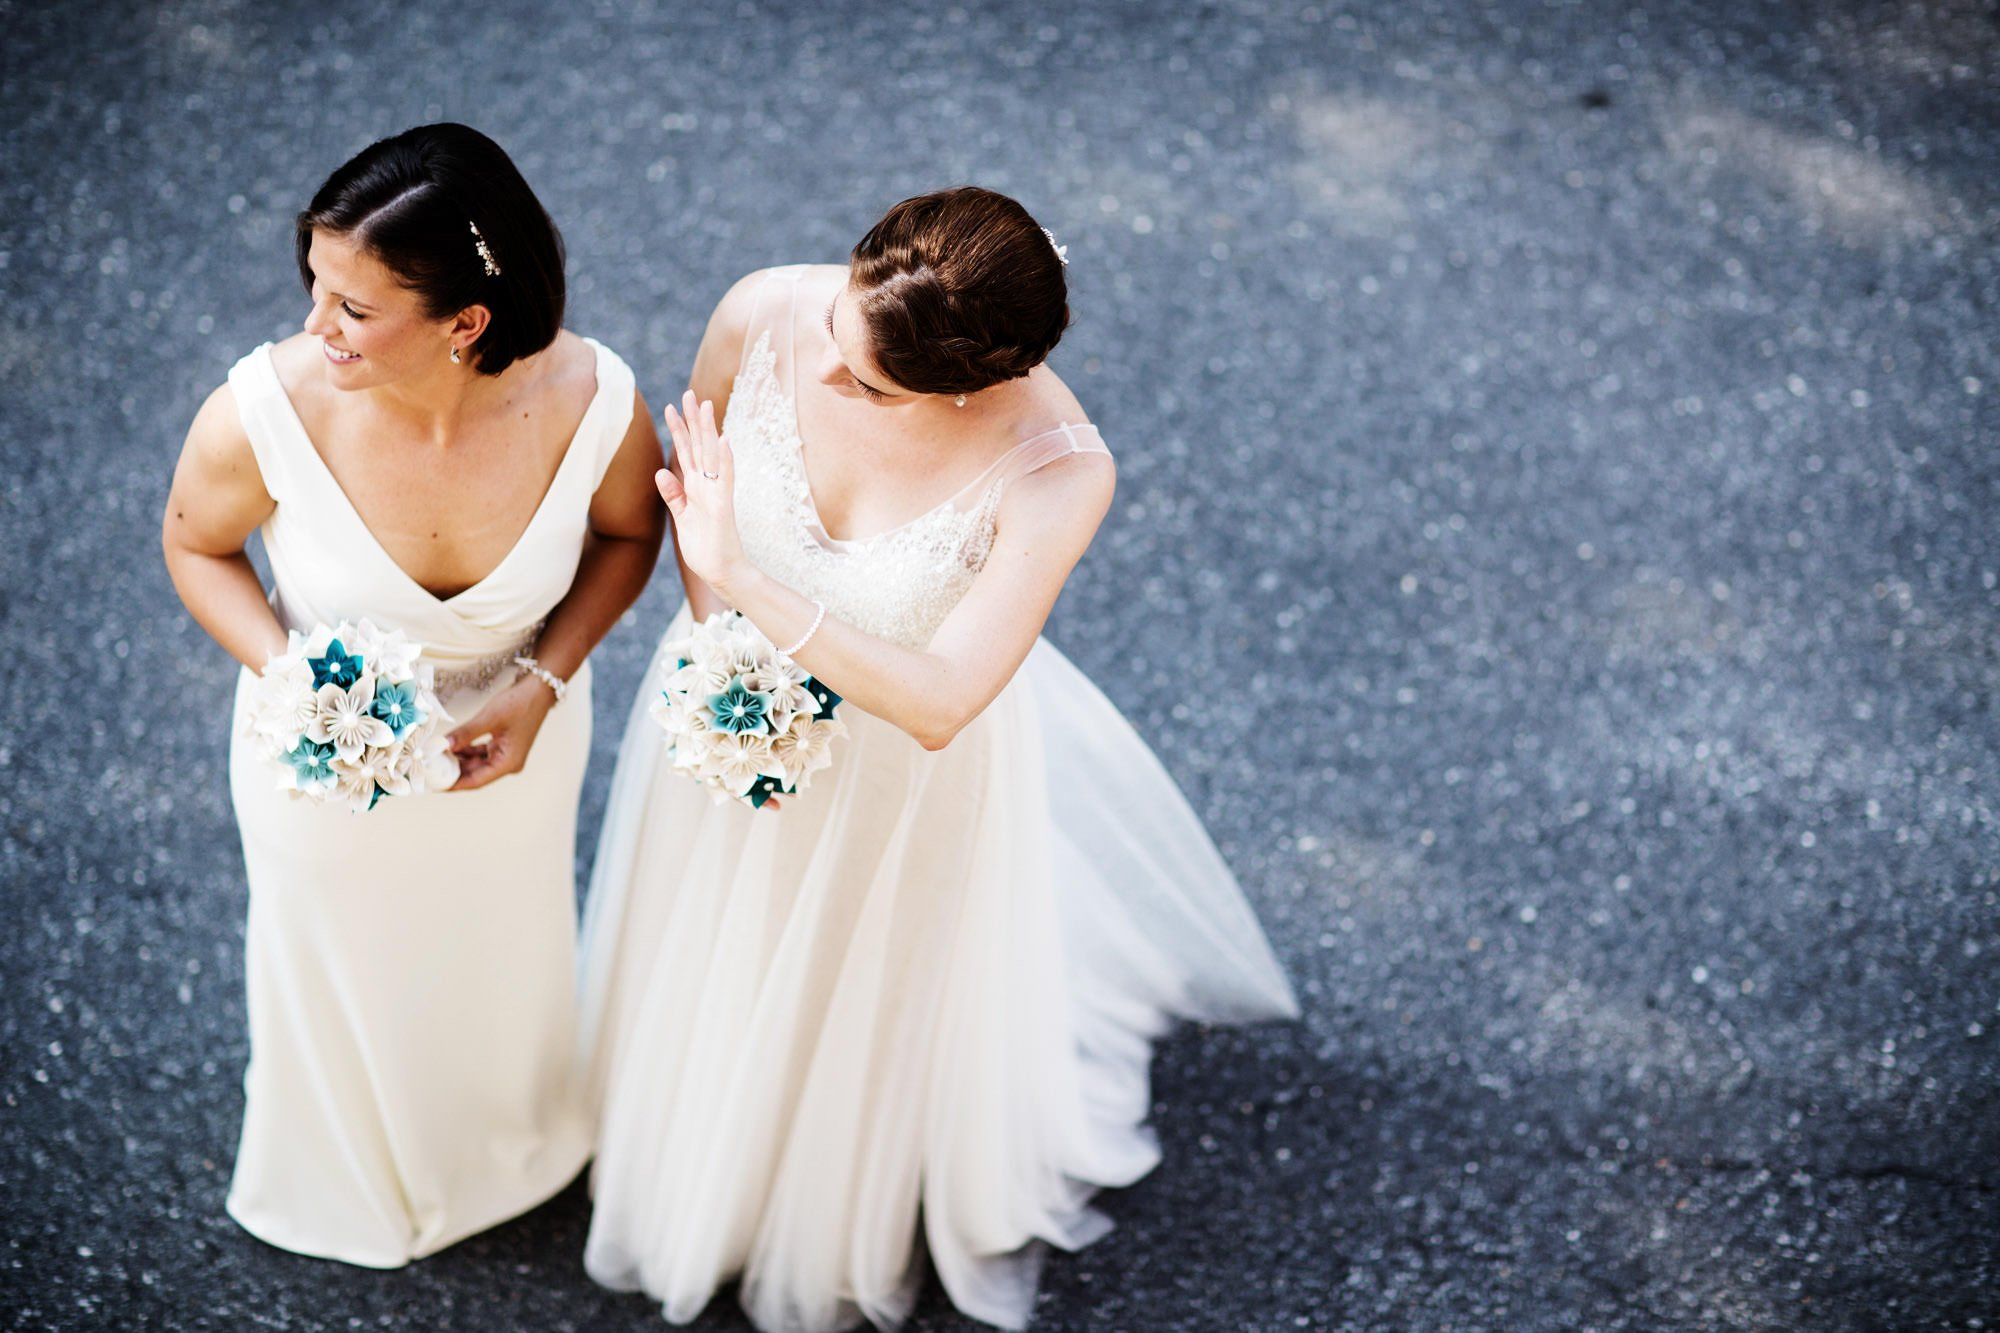 The brides wave to their guests.